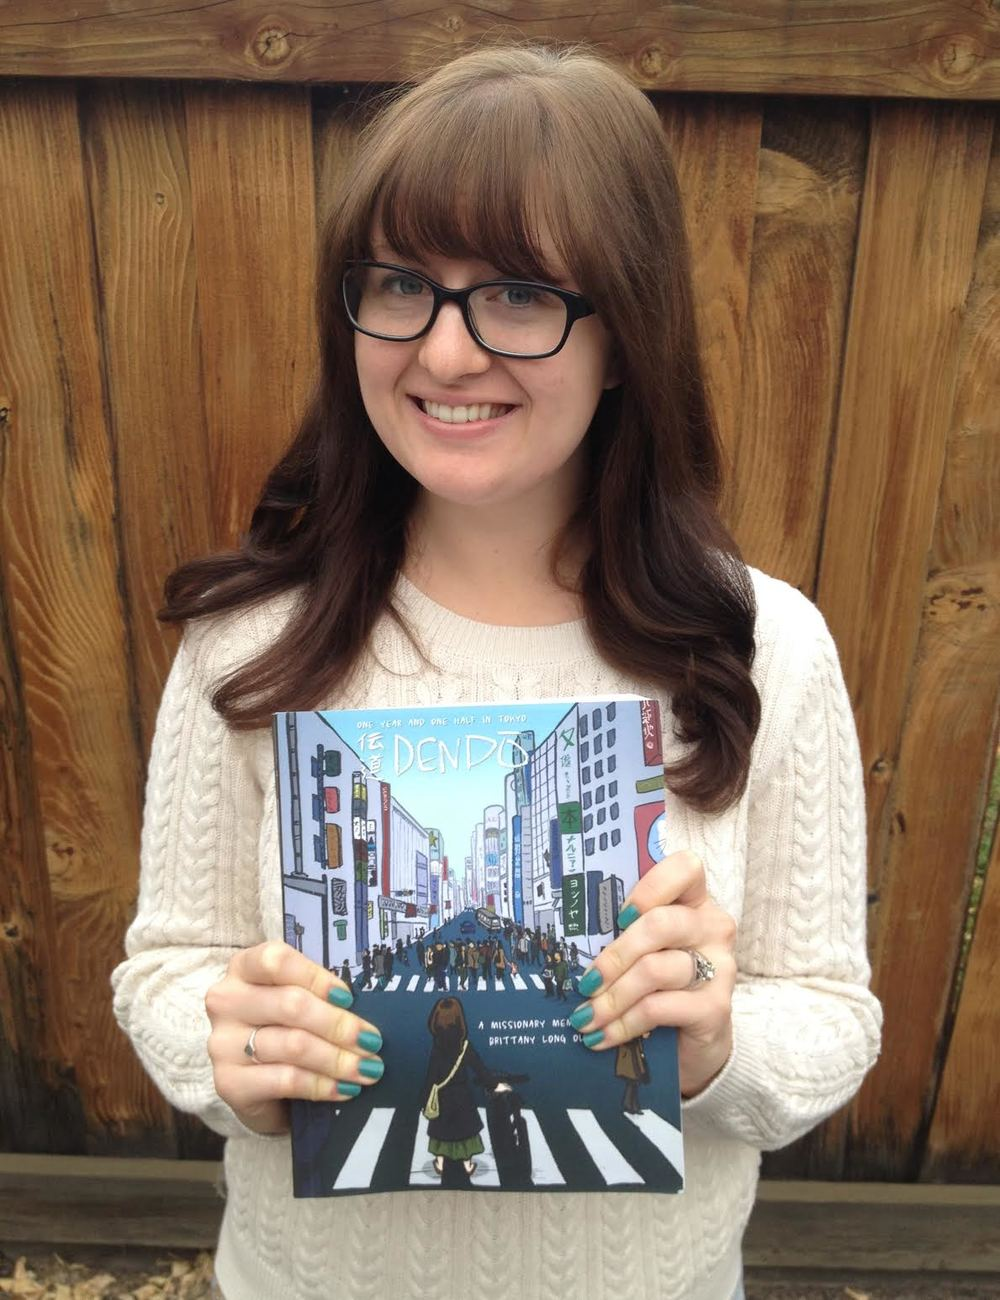 Brittany holding a copy of the graphic novel she self-published about her volunteer experiences in Japan.